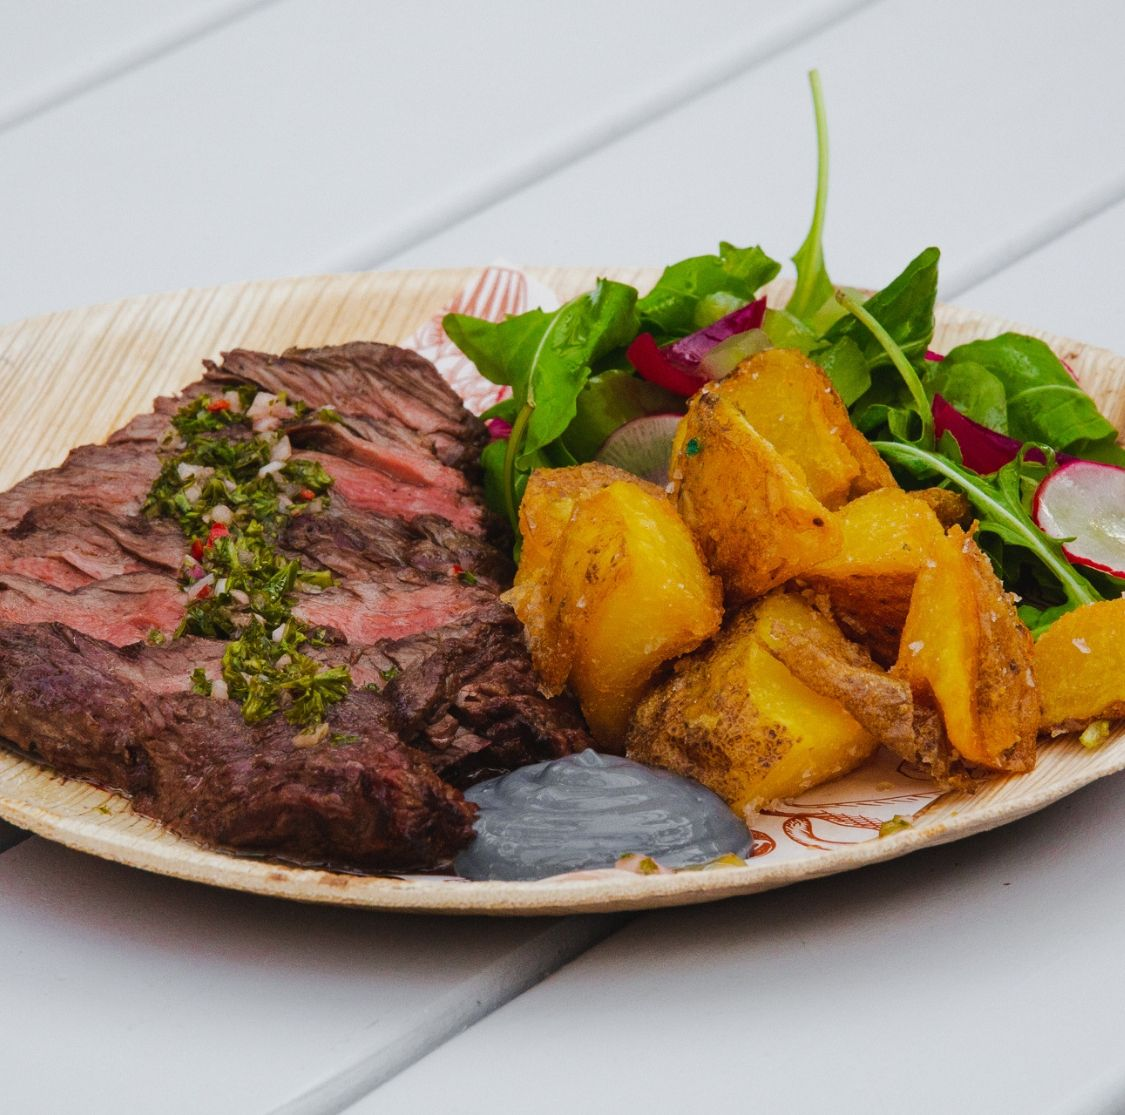 Mar and Tierra Grilled Steak - Chef's beef selection, crunchy potatoes and fresh greens